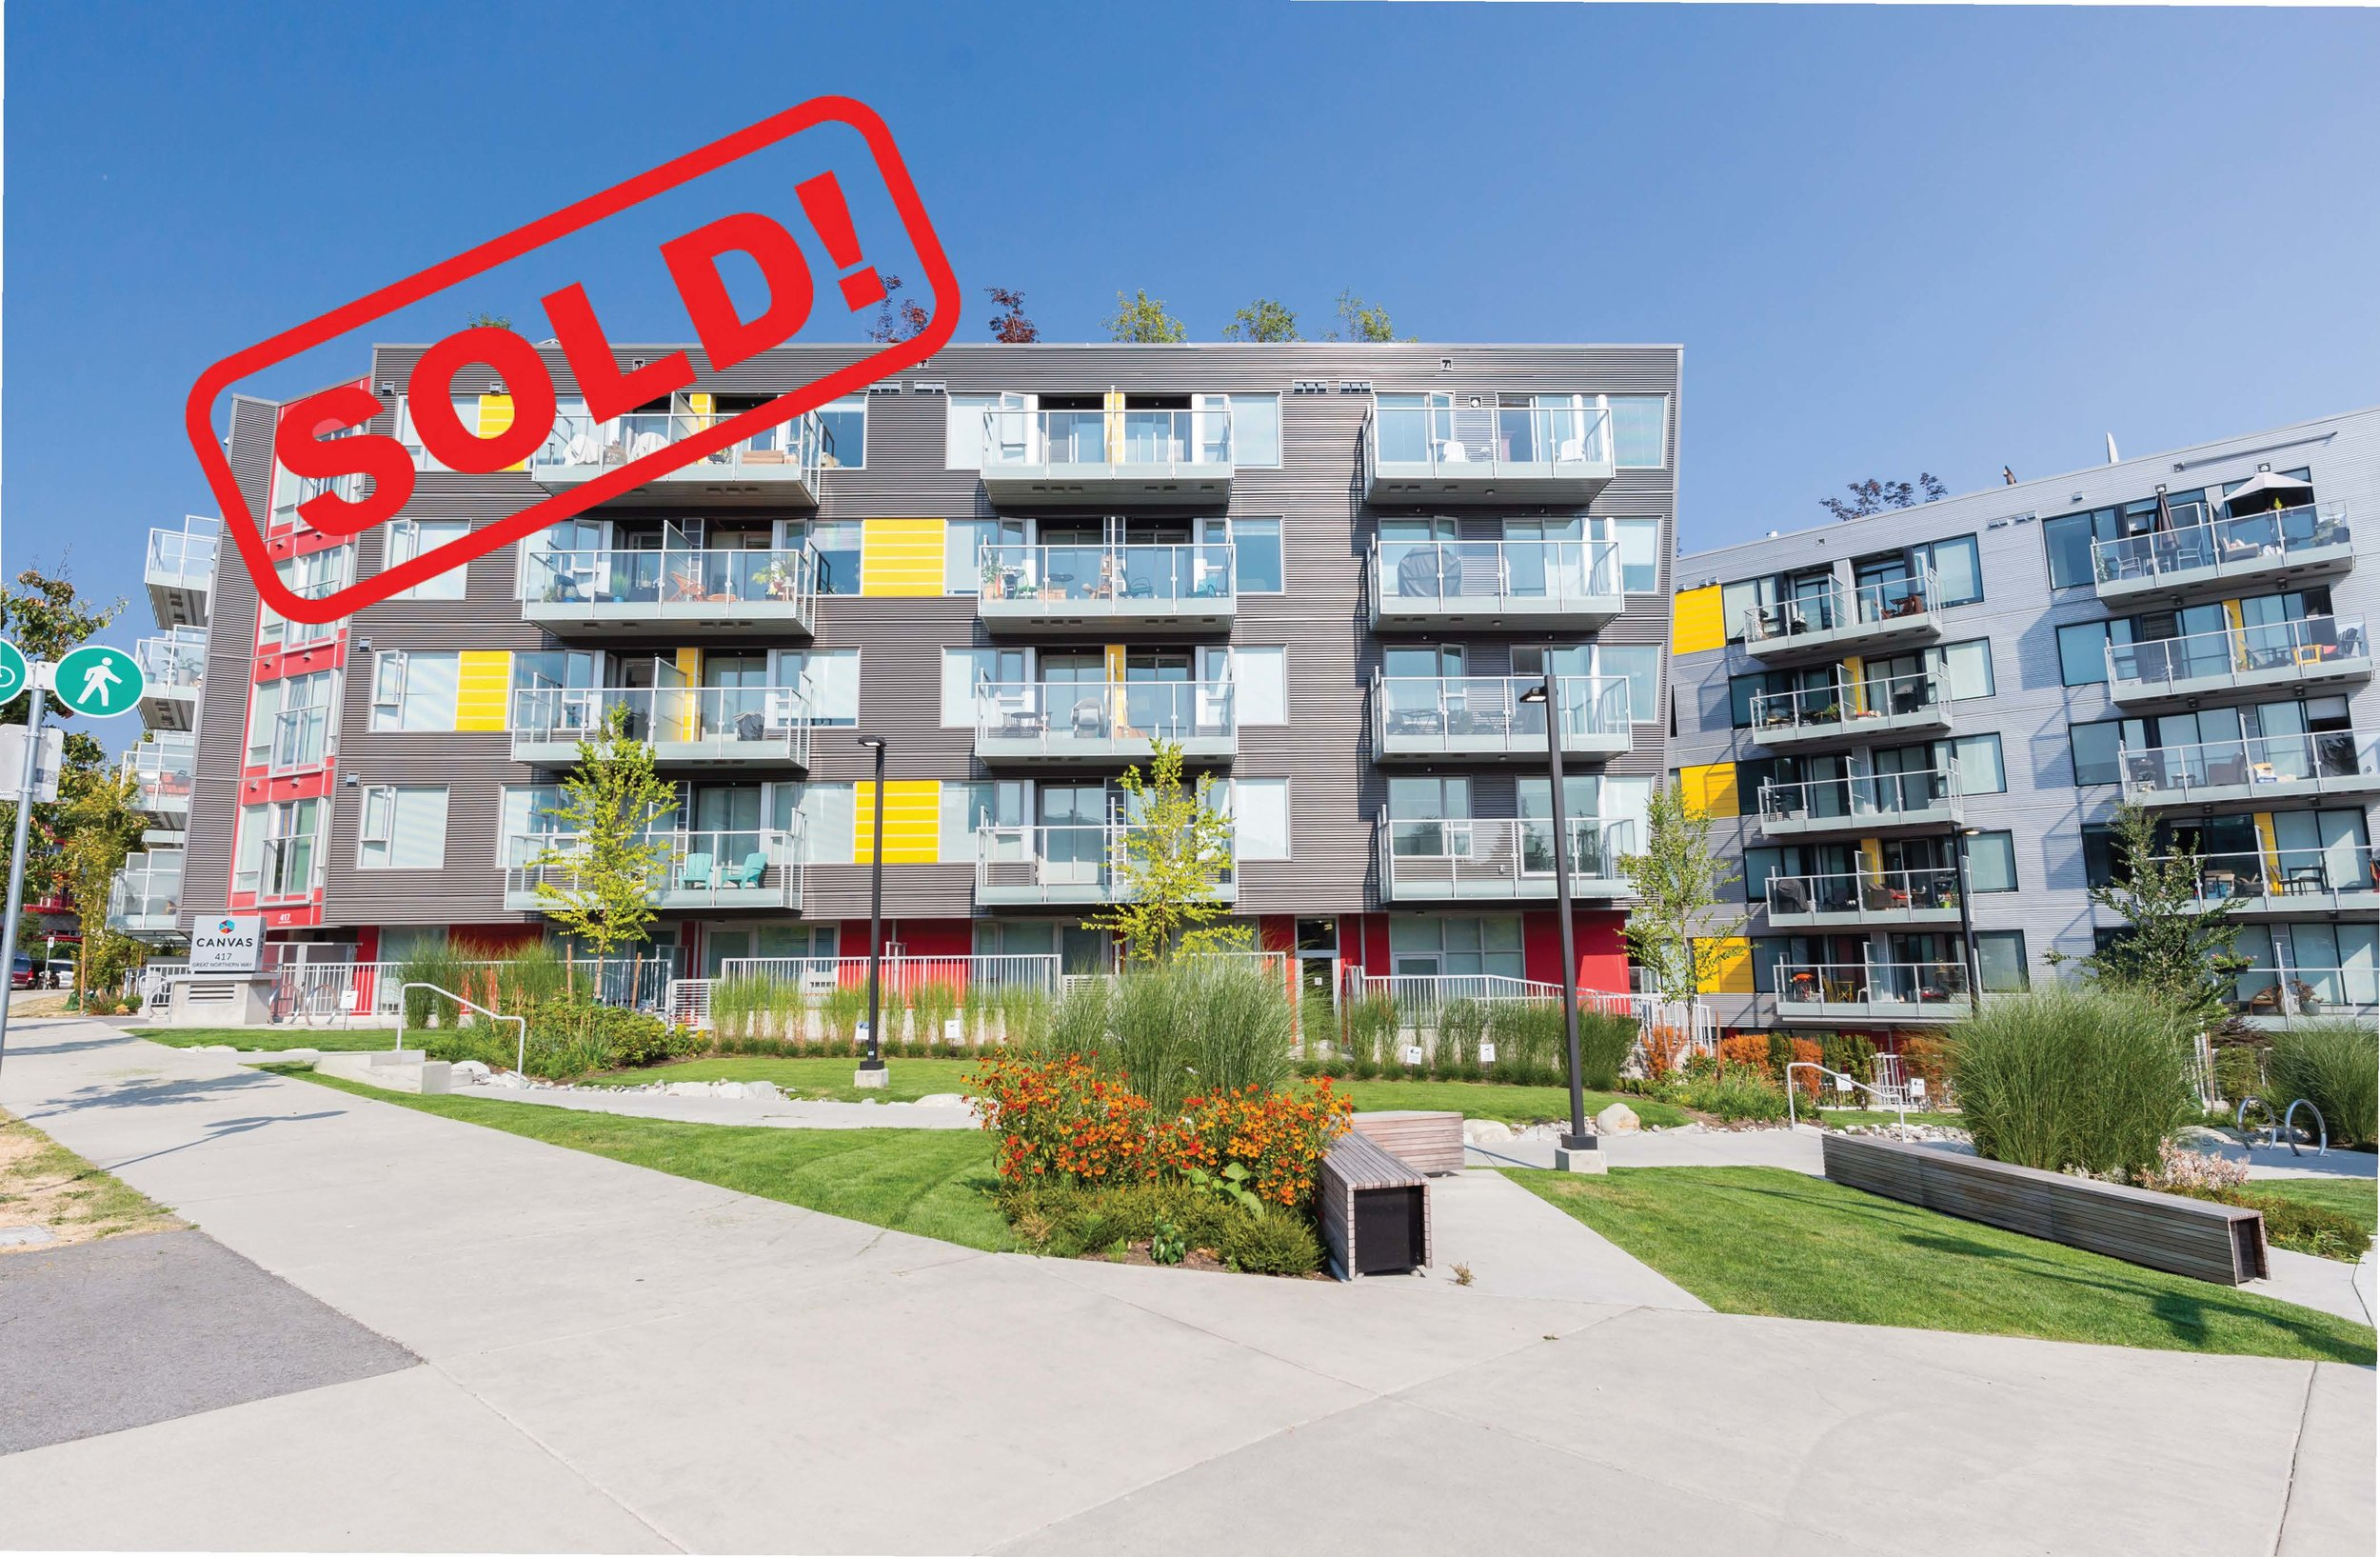 611-417 GREAT NORTHERN WAY     SOLD FOR: $735,000  1 BED | 1 BATH | 696 SF